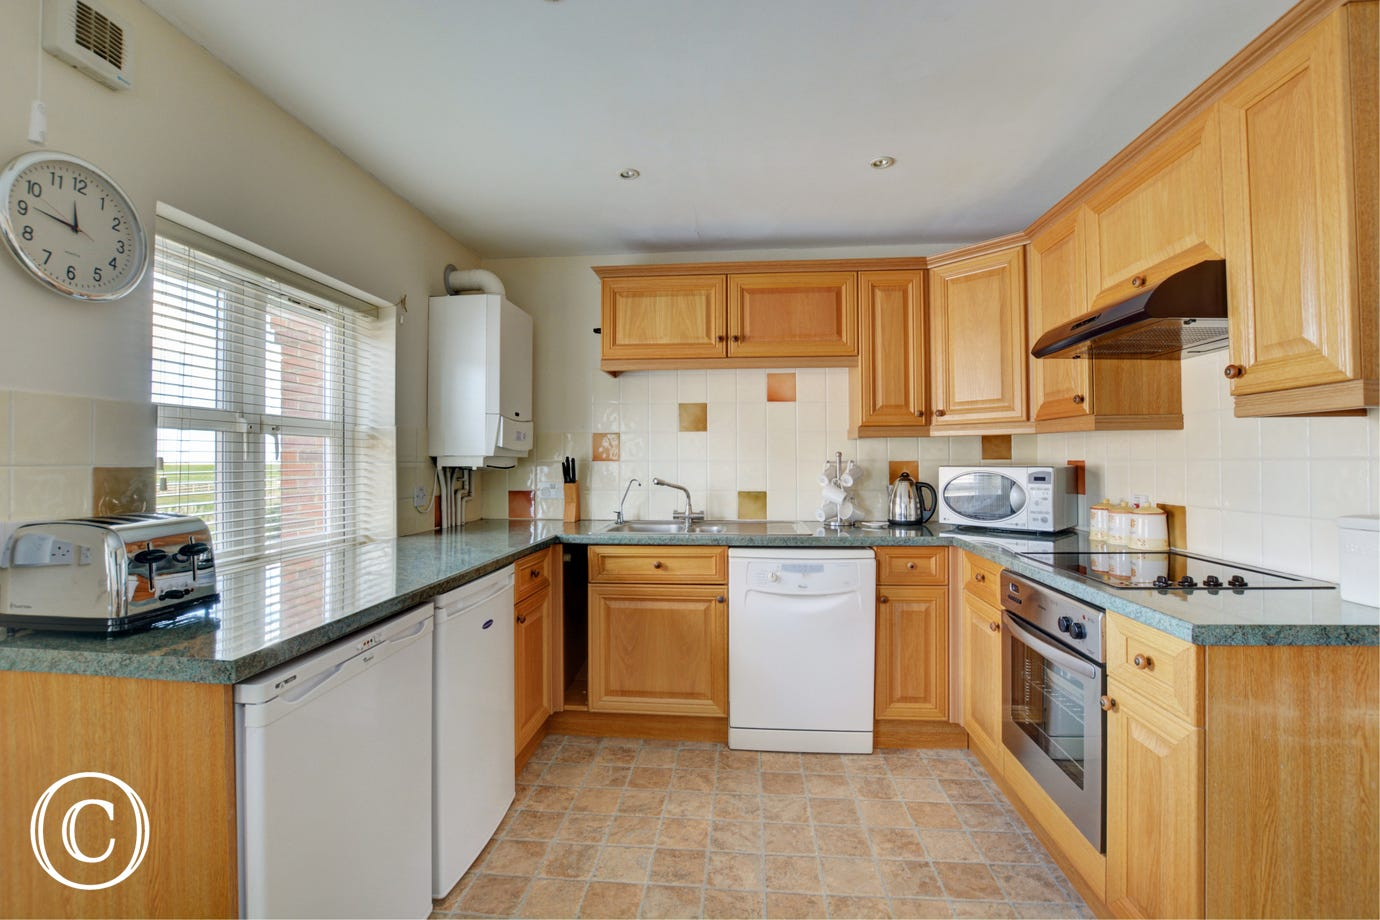 Modern kitchen fitted with all major appliances and the benefit of an utility room in the garage